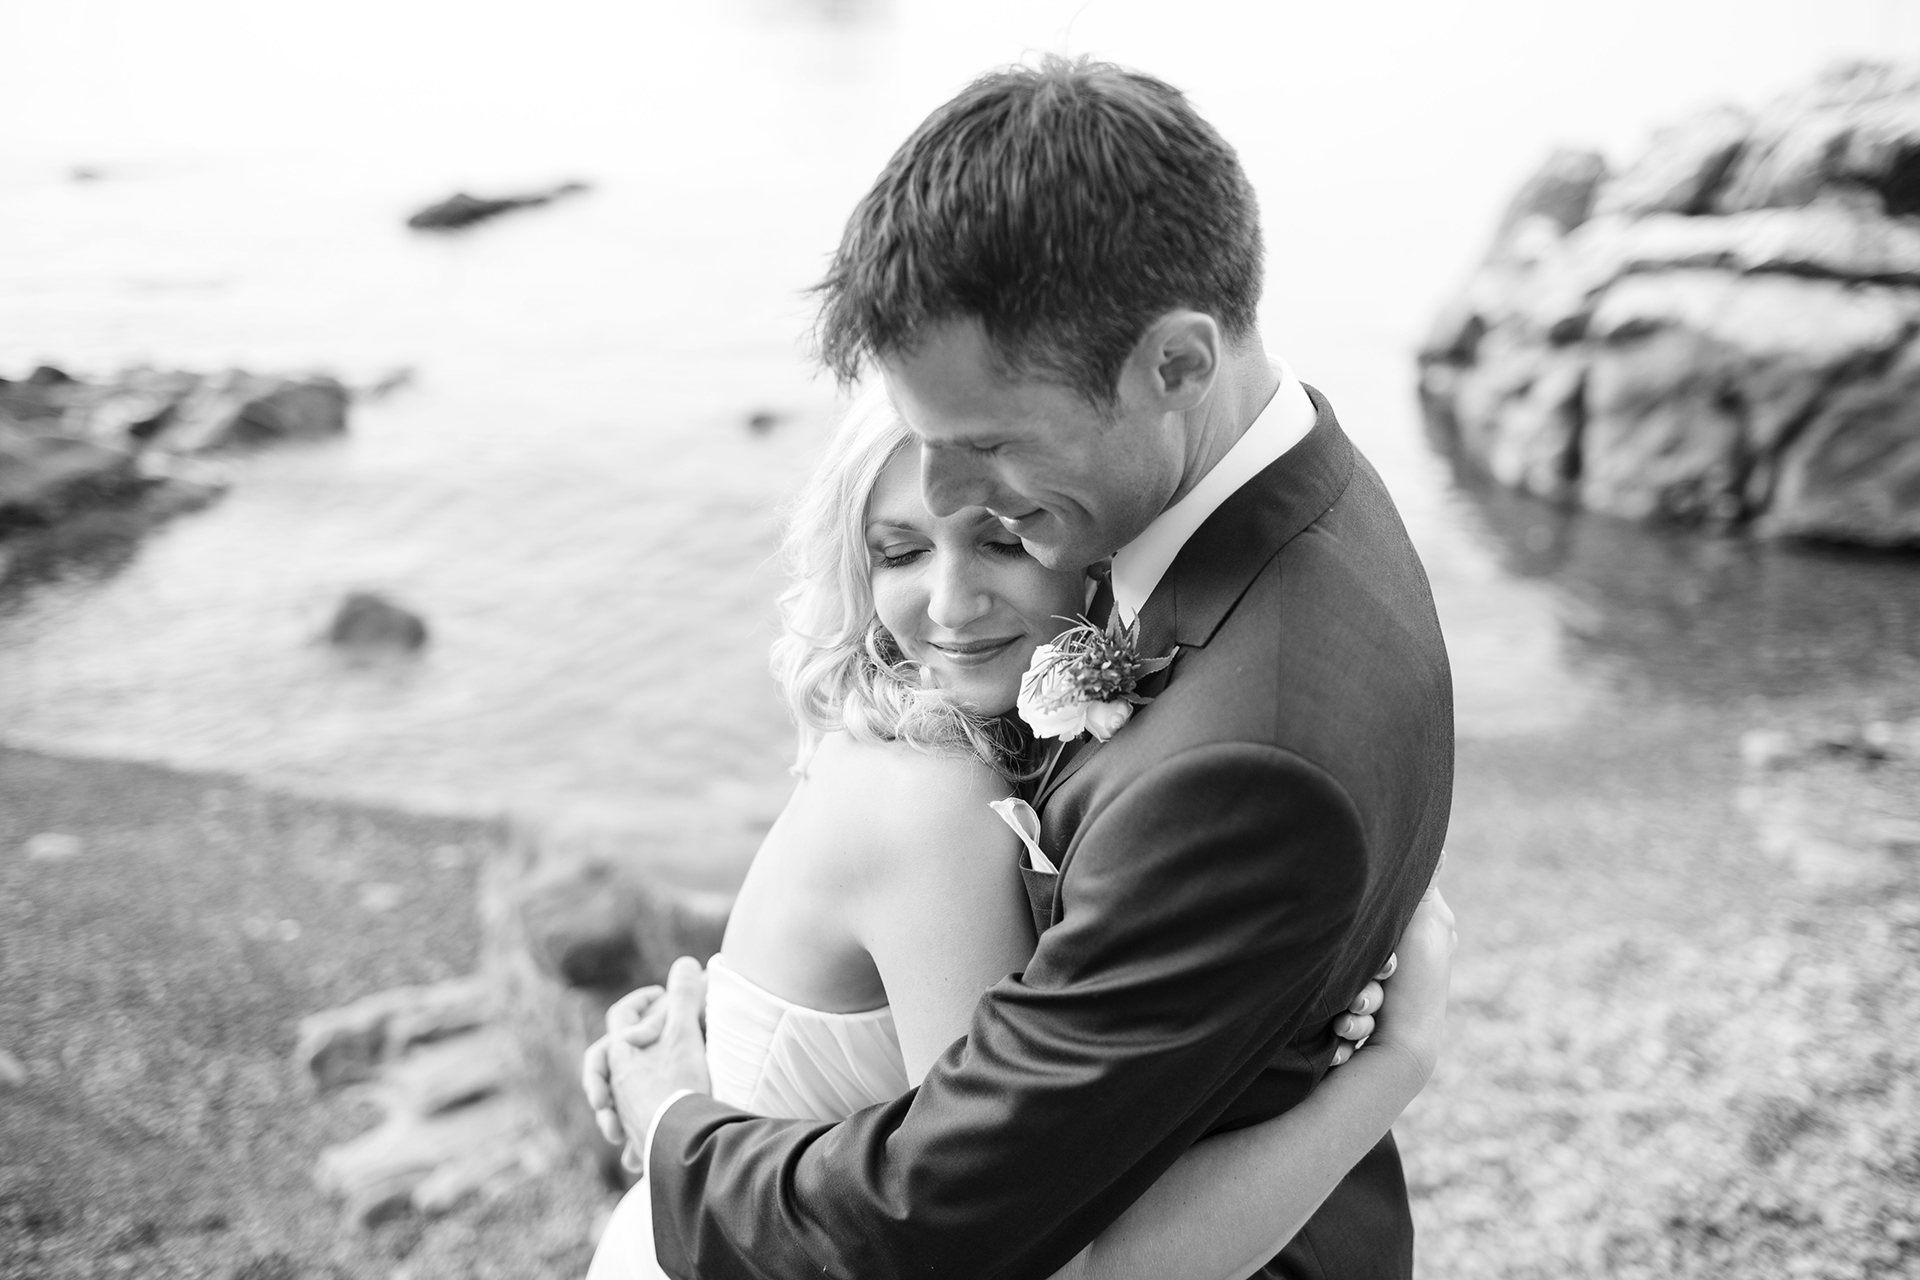 Sicily Beach Elopement Couple Portrait | Loving embrace of the newlyweds in Cefalù